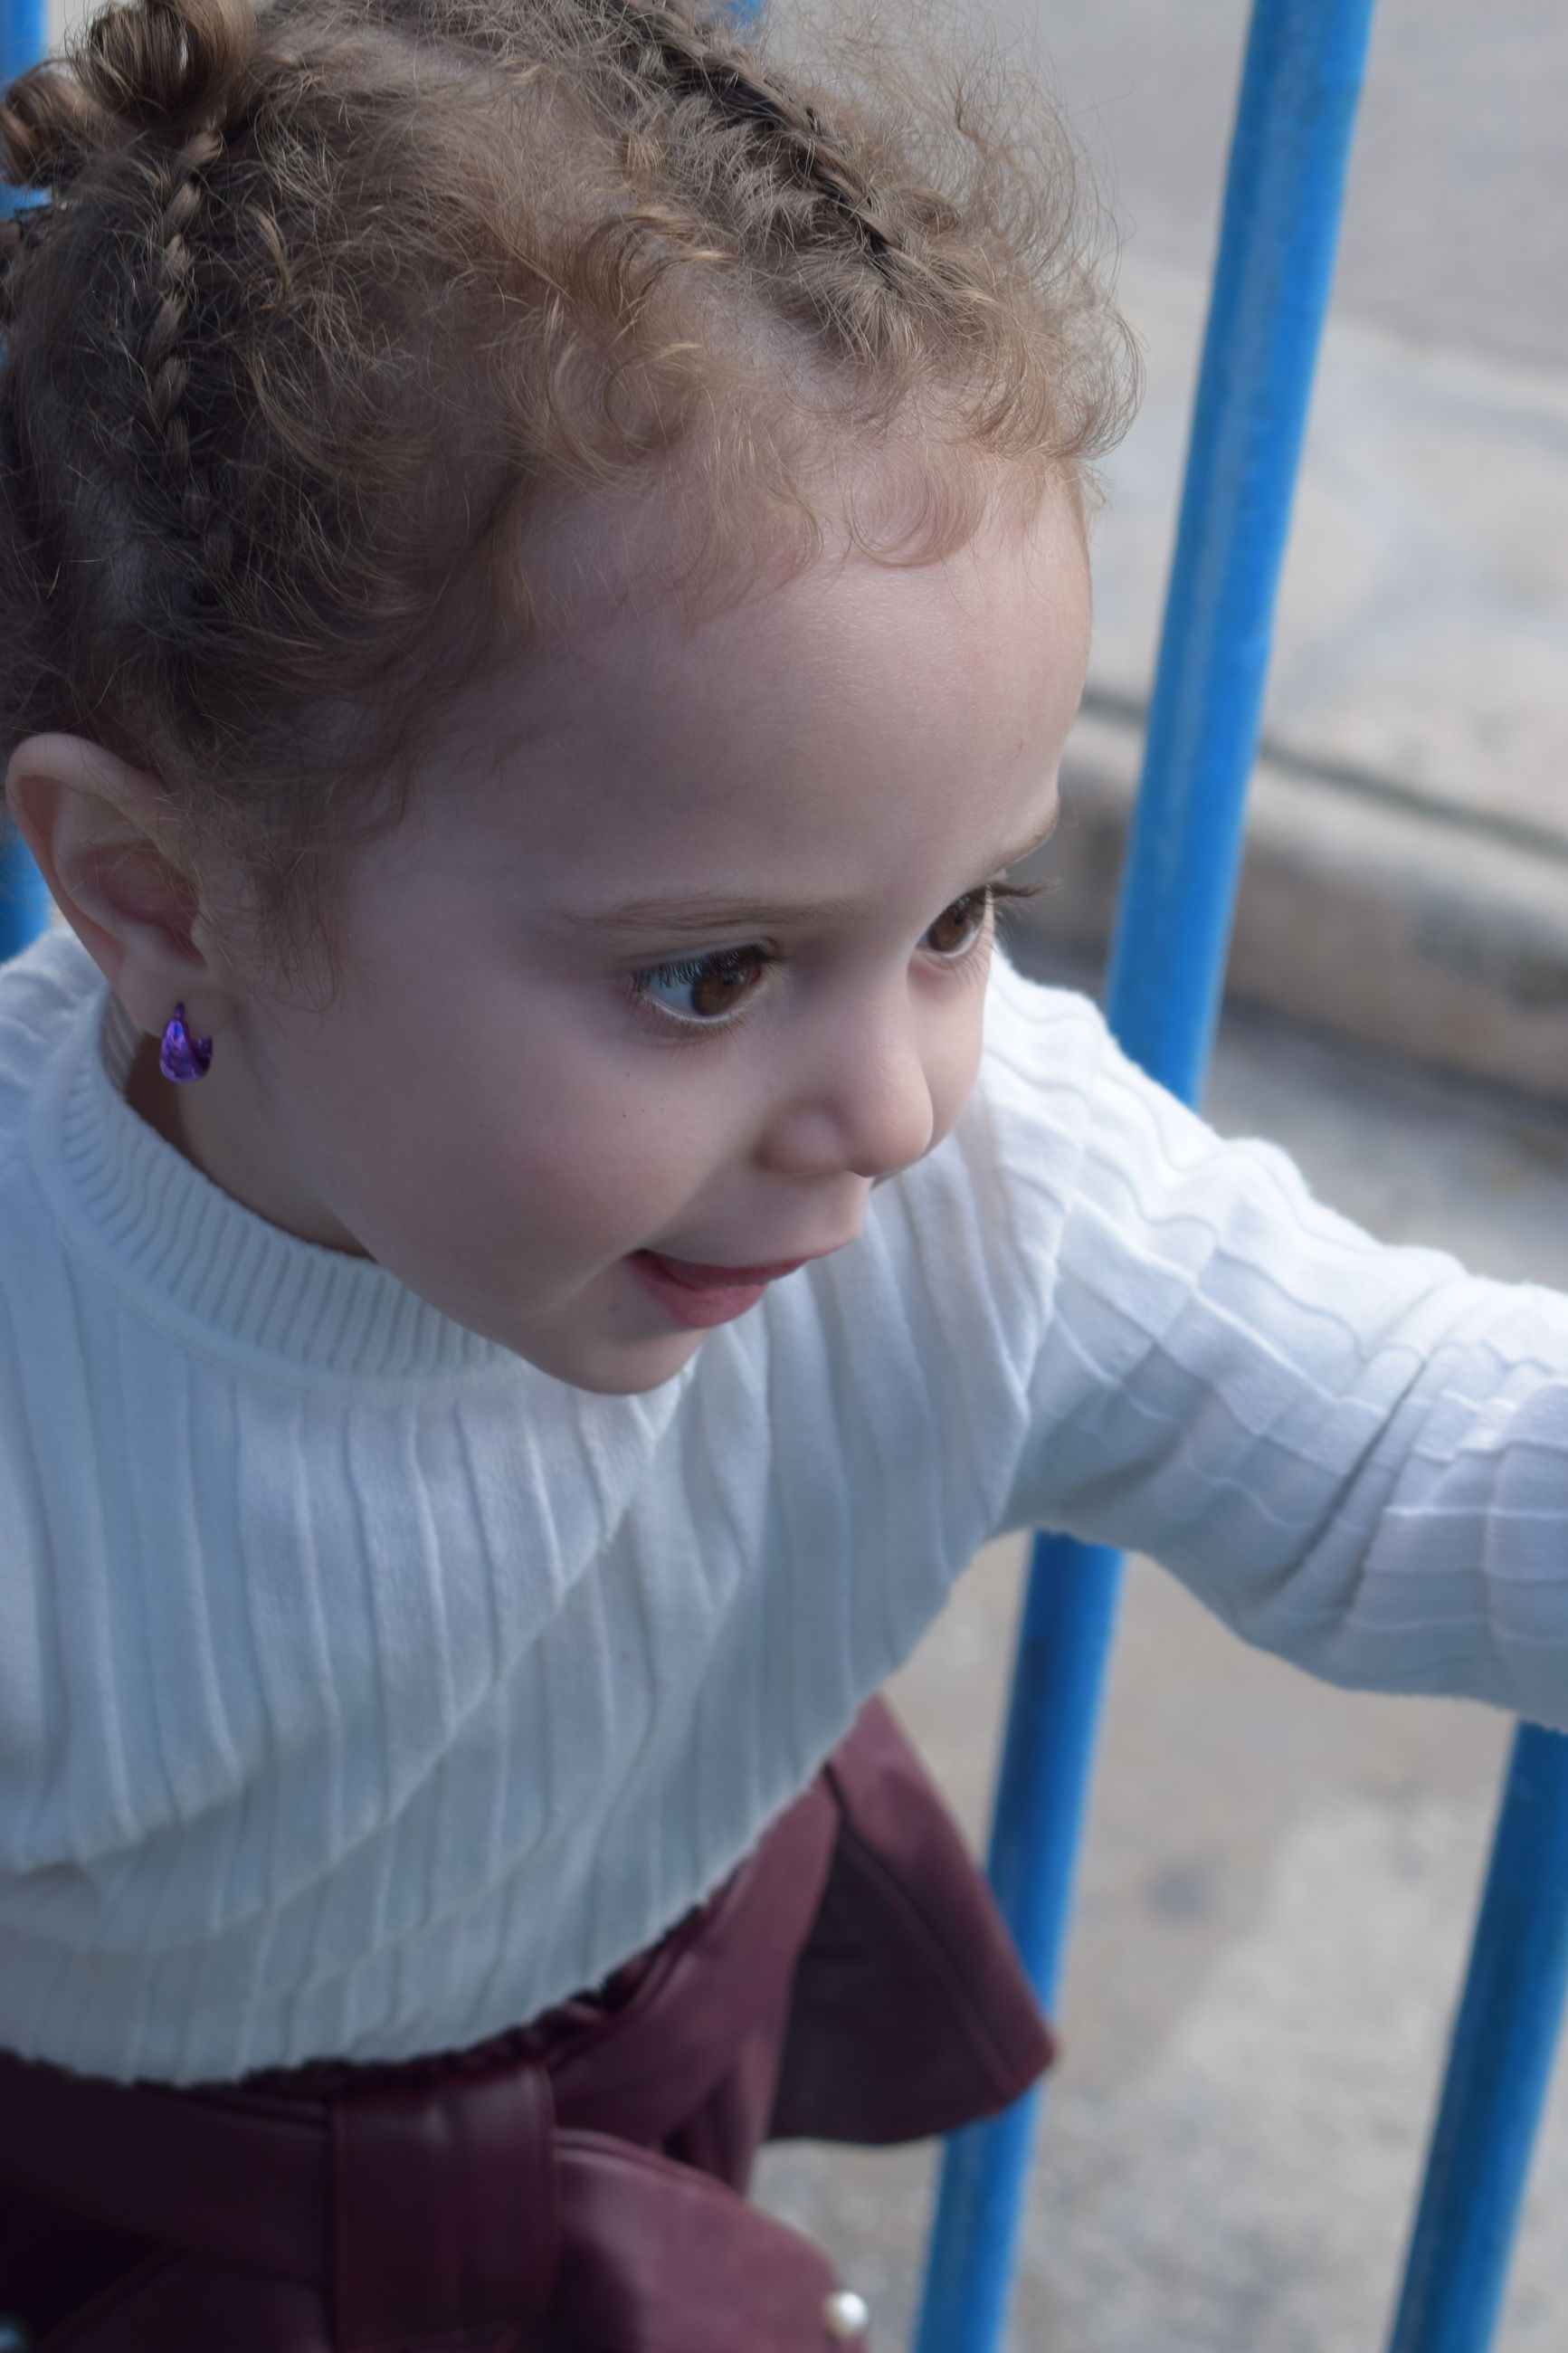 childhood, innocence, real people, cute, one person, leisure activity, outdoors, day, lifestyles, close-up